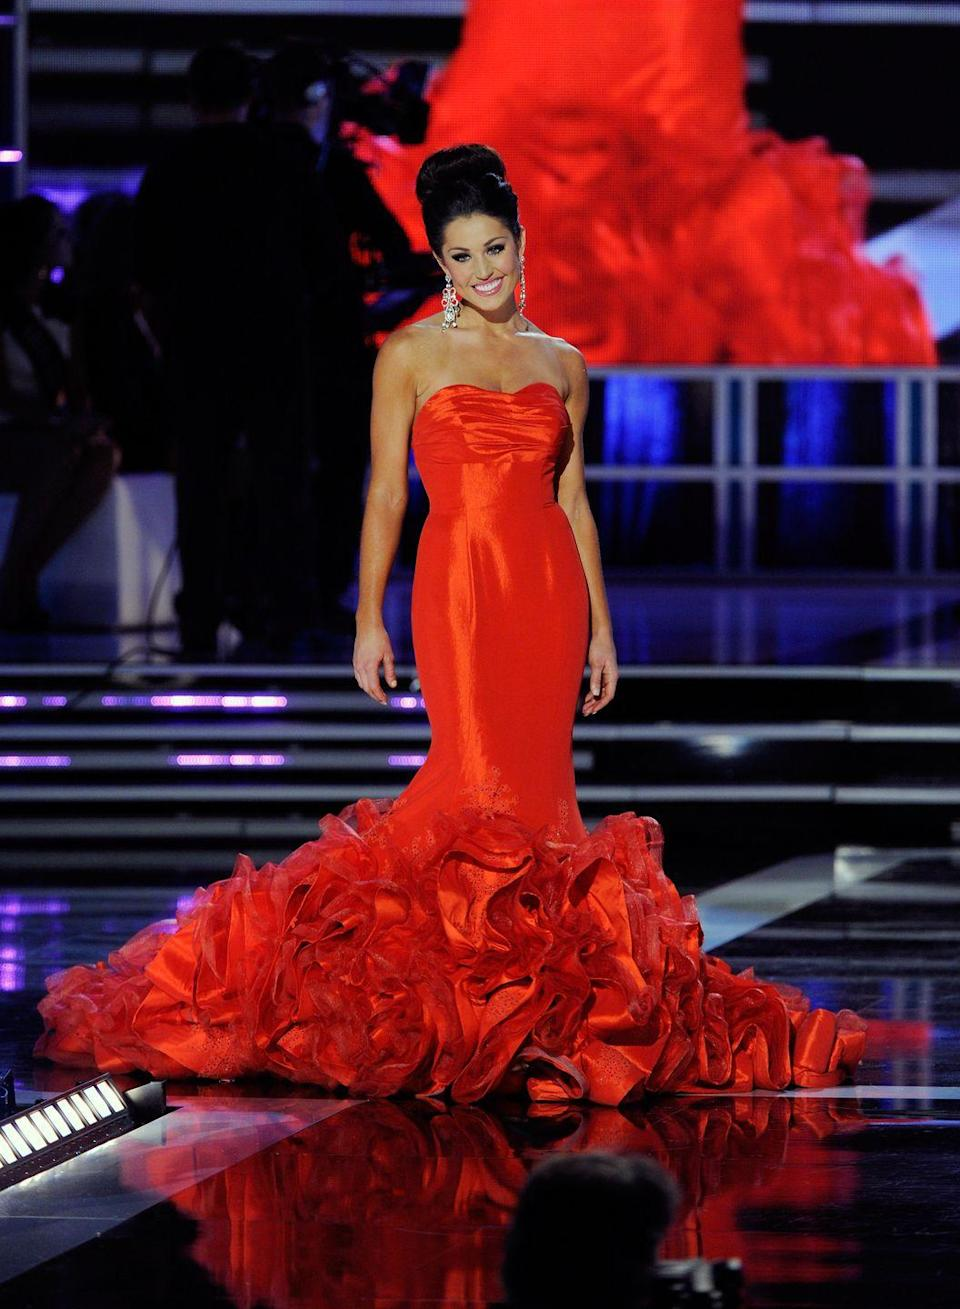 <p>Megan Ervin's strapless gown's ruffled train went on for days. With the bright red color and intricate detailing, her memorable gown resembled the prettiest of roses.</p>